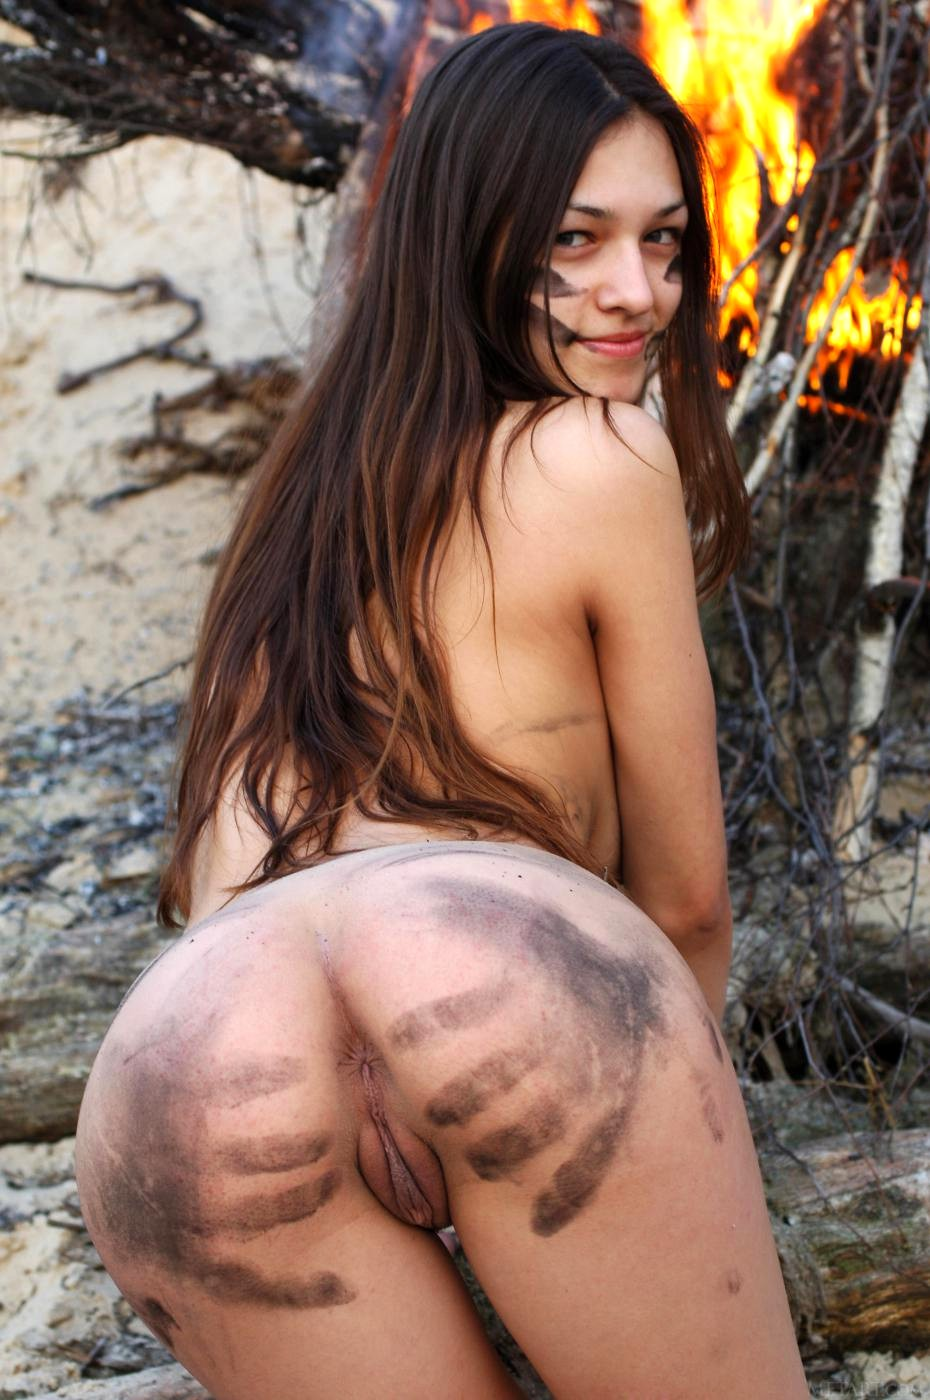 hairy pussy kashmiri girls naked pictures